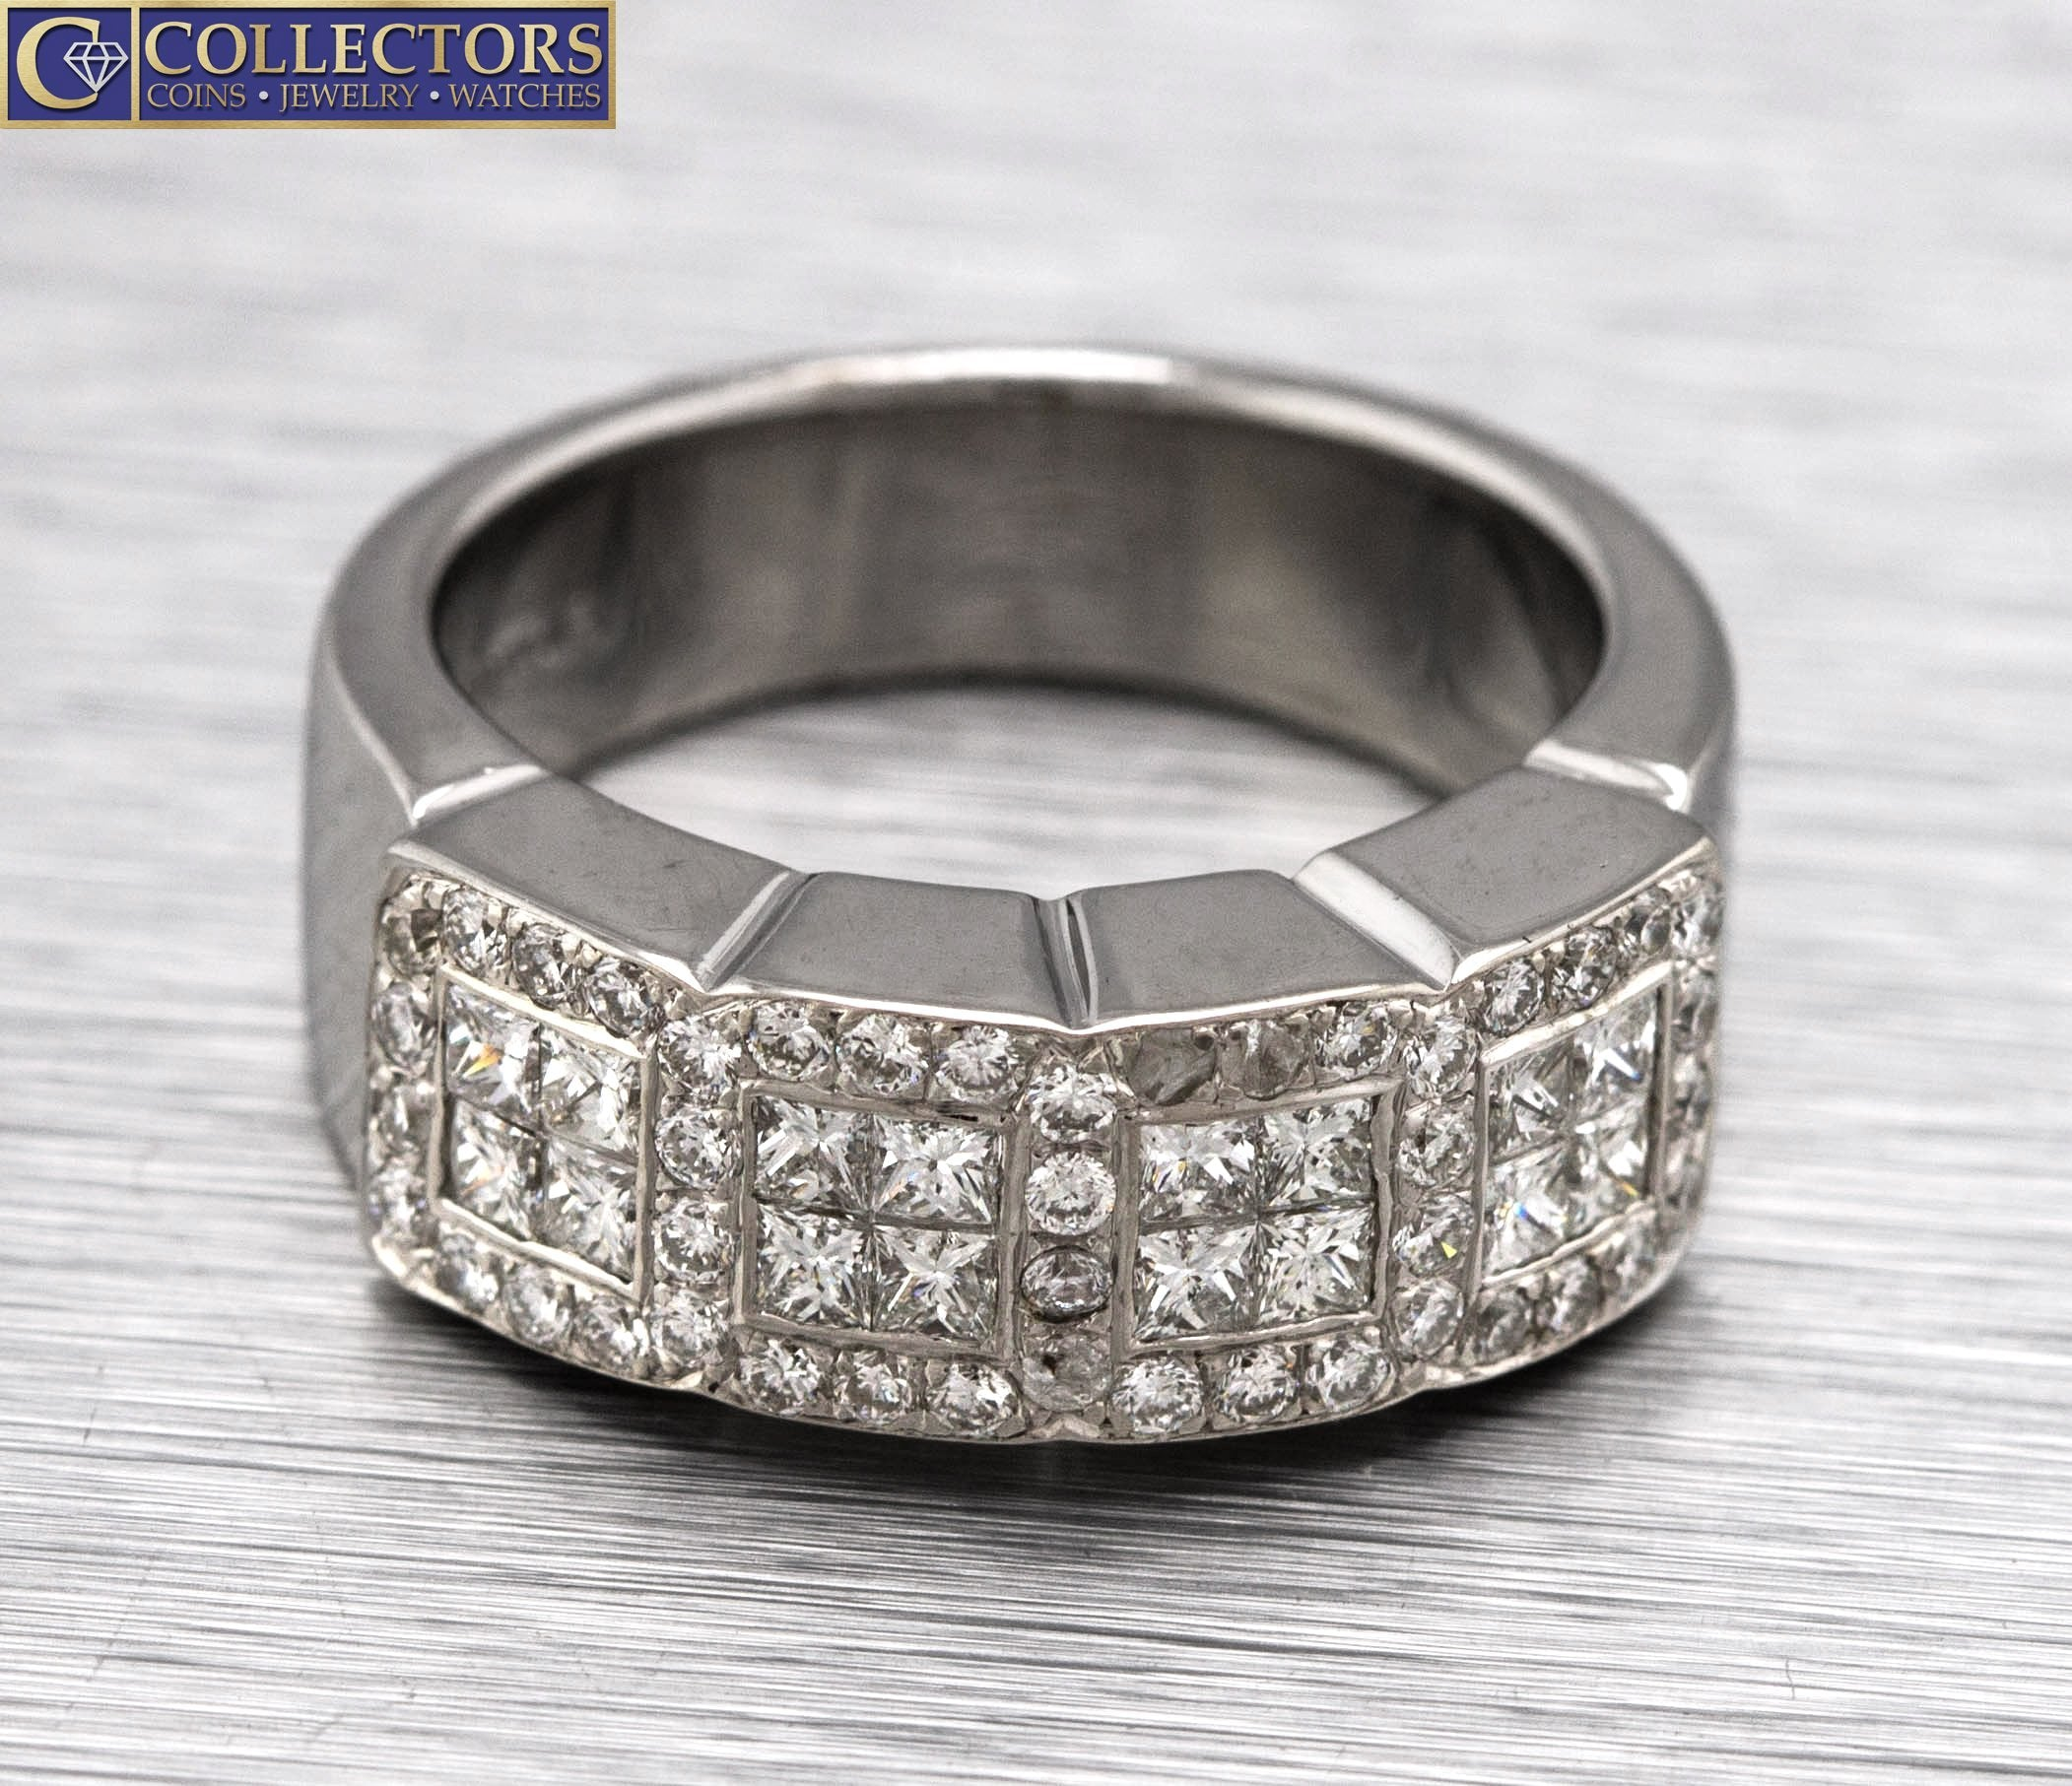 Lovely Ladies 18K 750 White Gold 1.24ctw Diamond Princess Cut Cocktail Ring